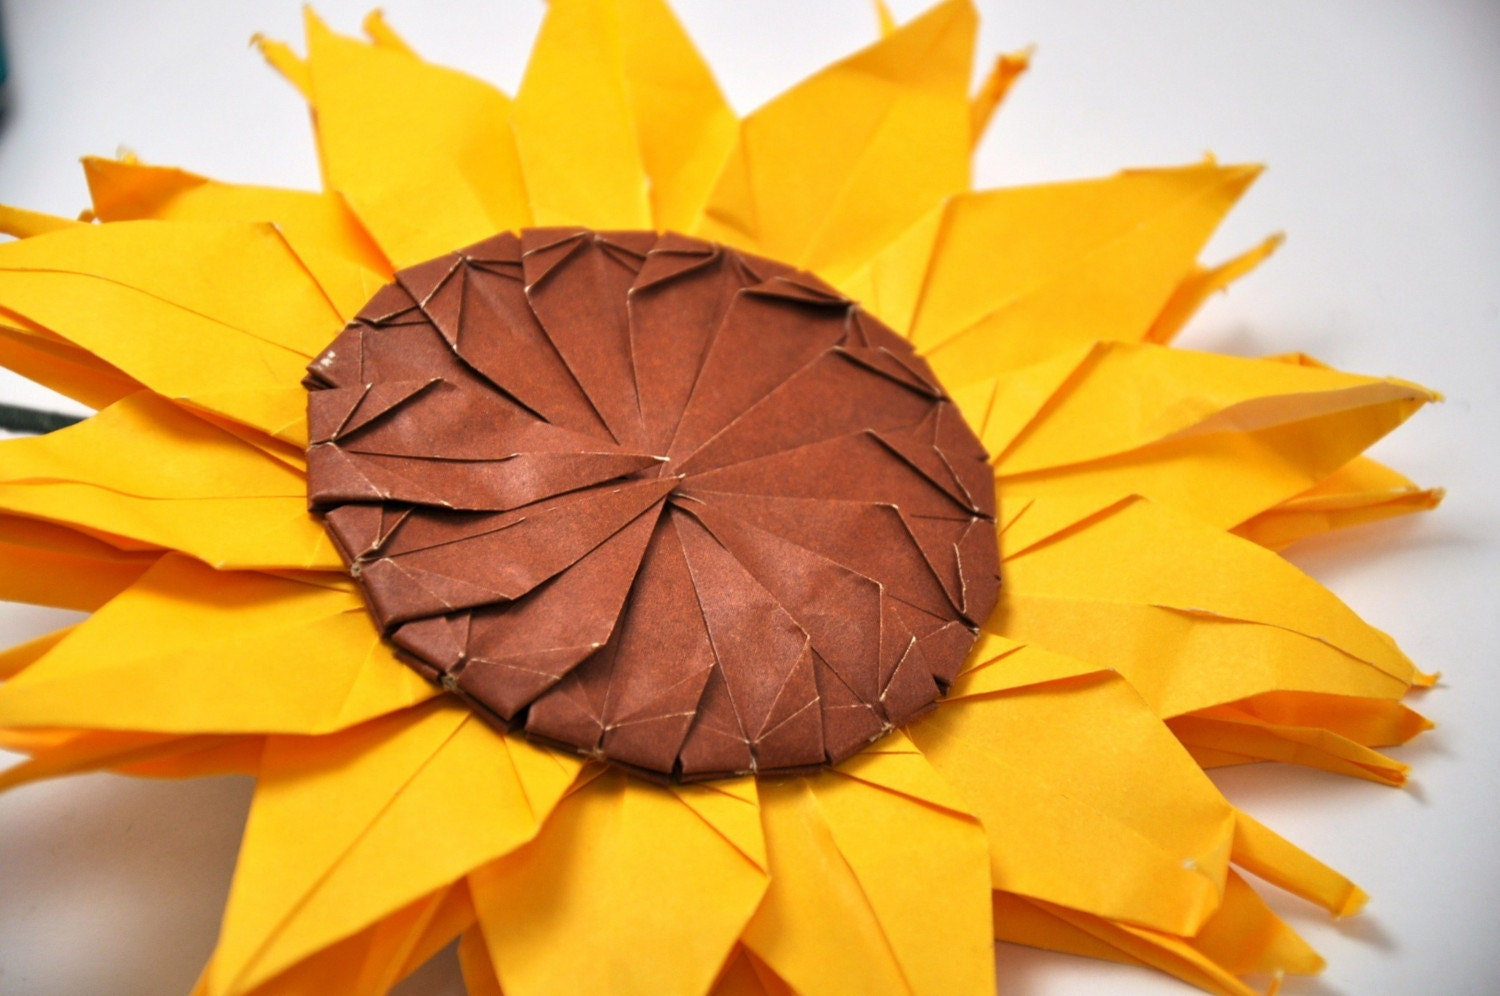 Paper Sunflower made from Origami Cranes